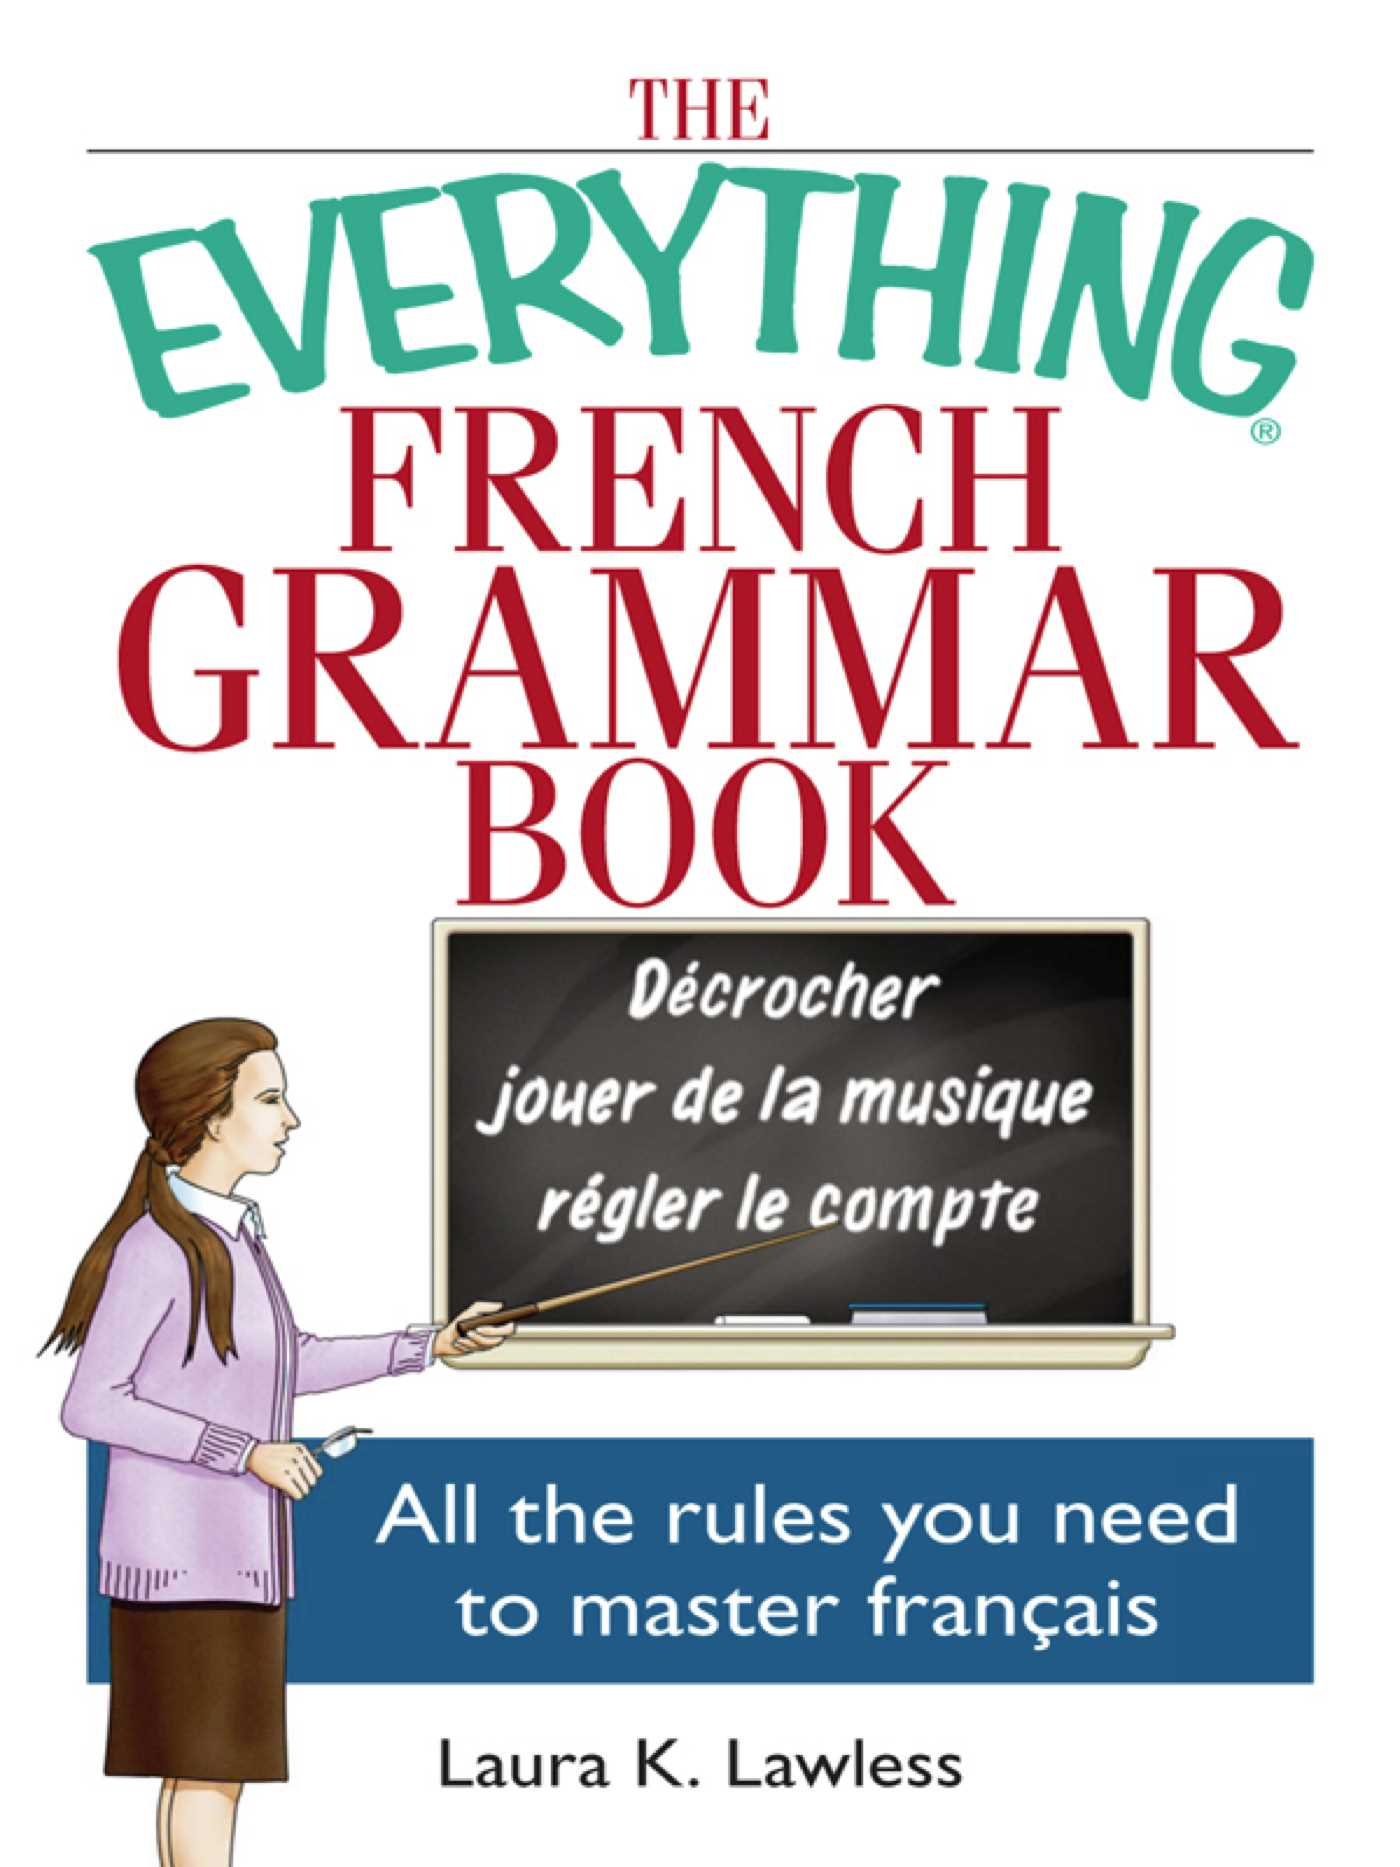 The Everything French Grammar Book Ebook By Laura K